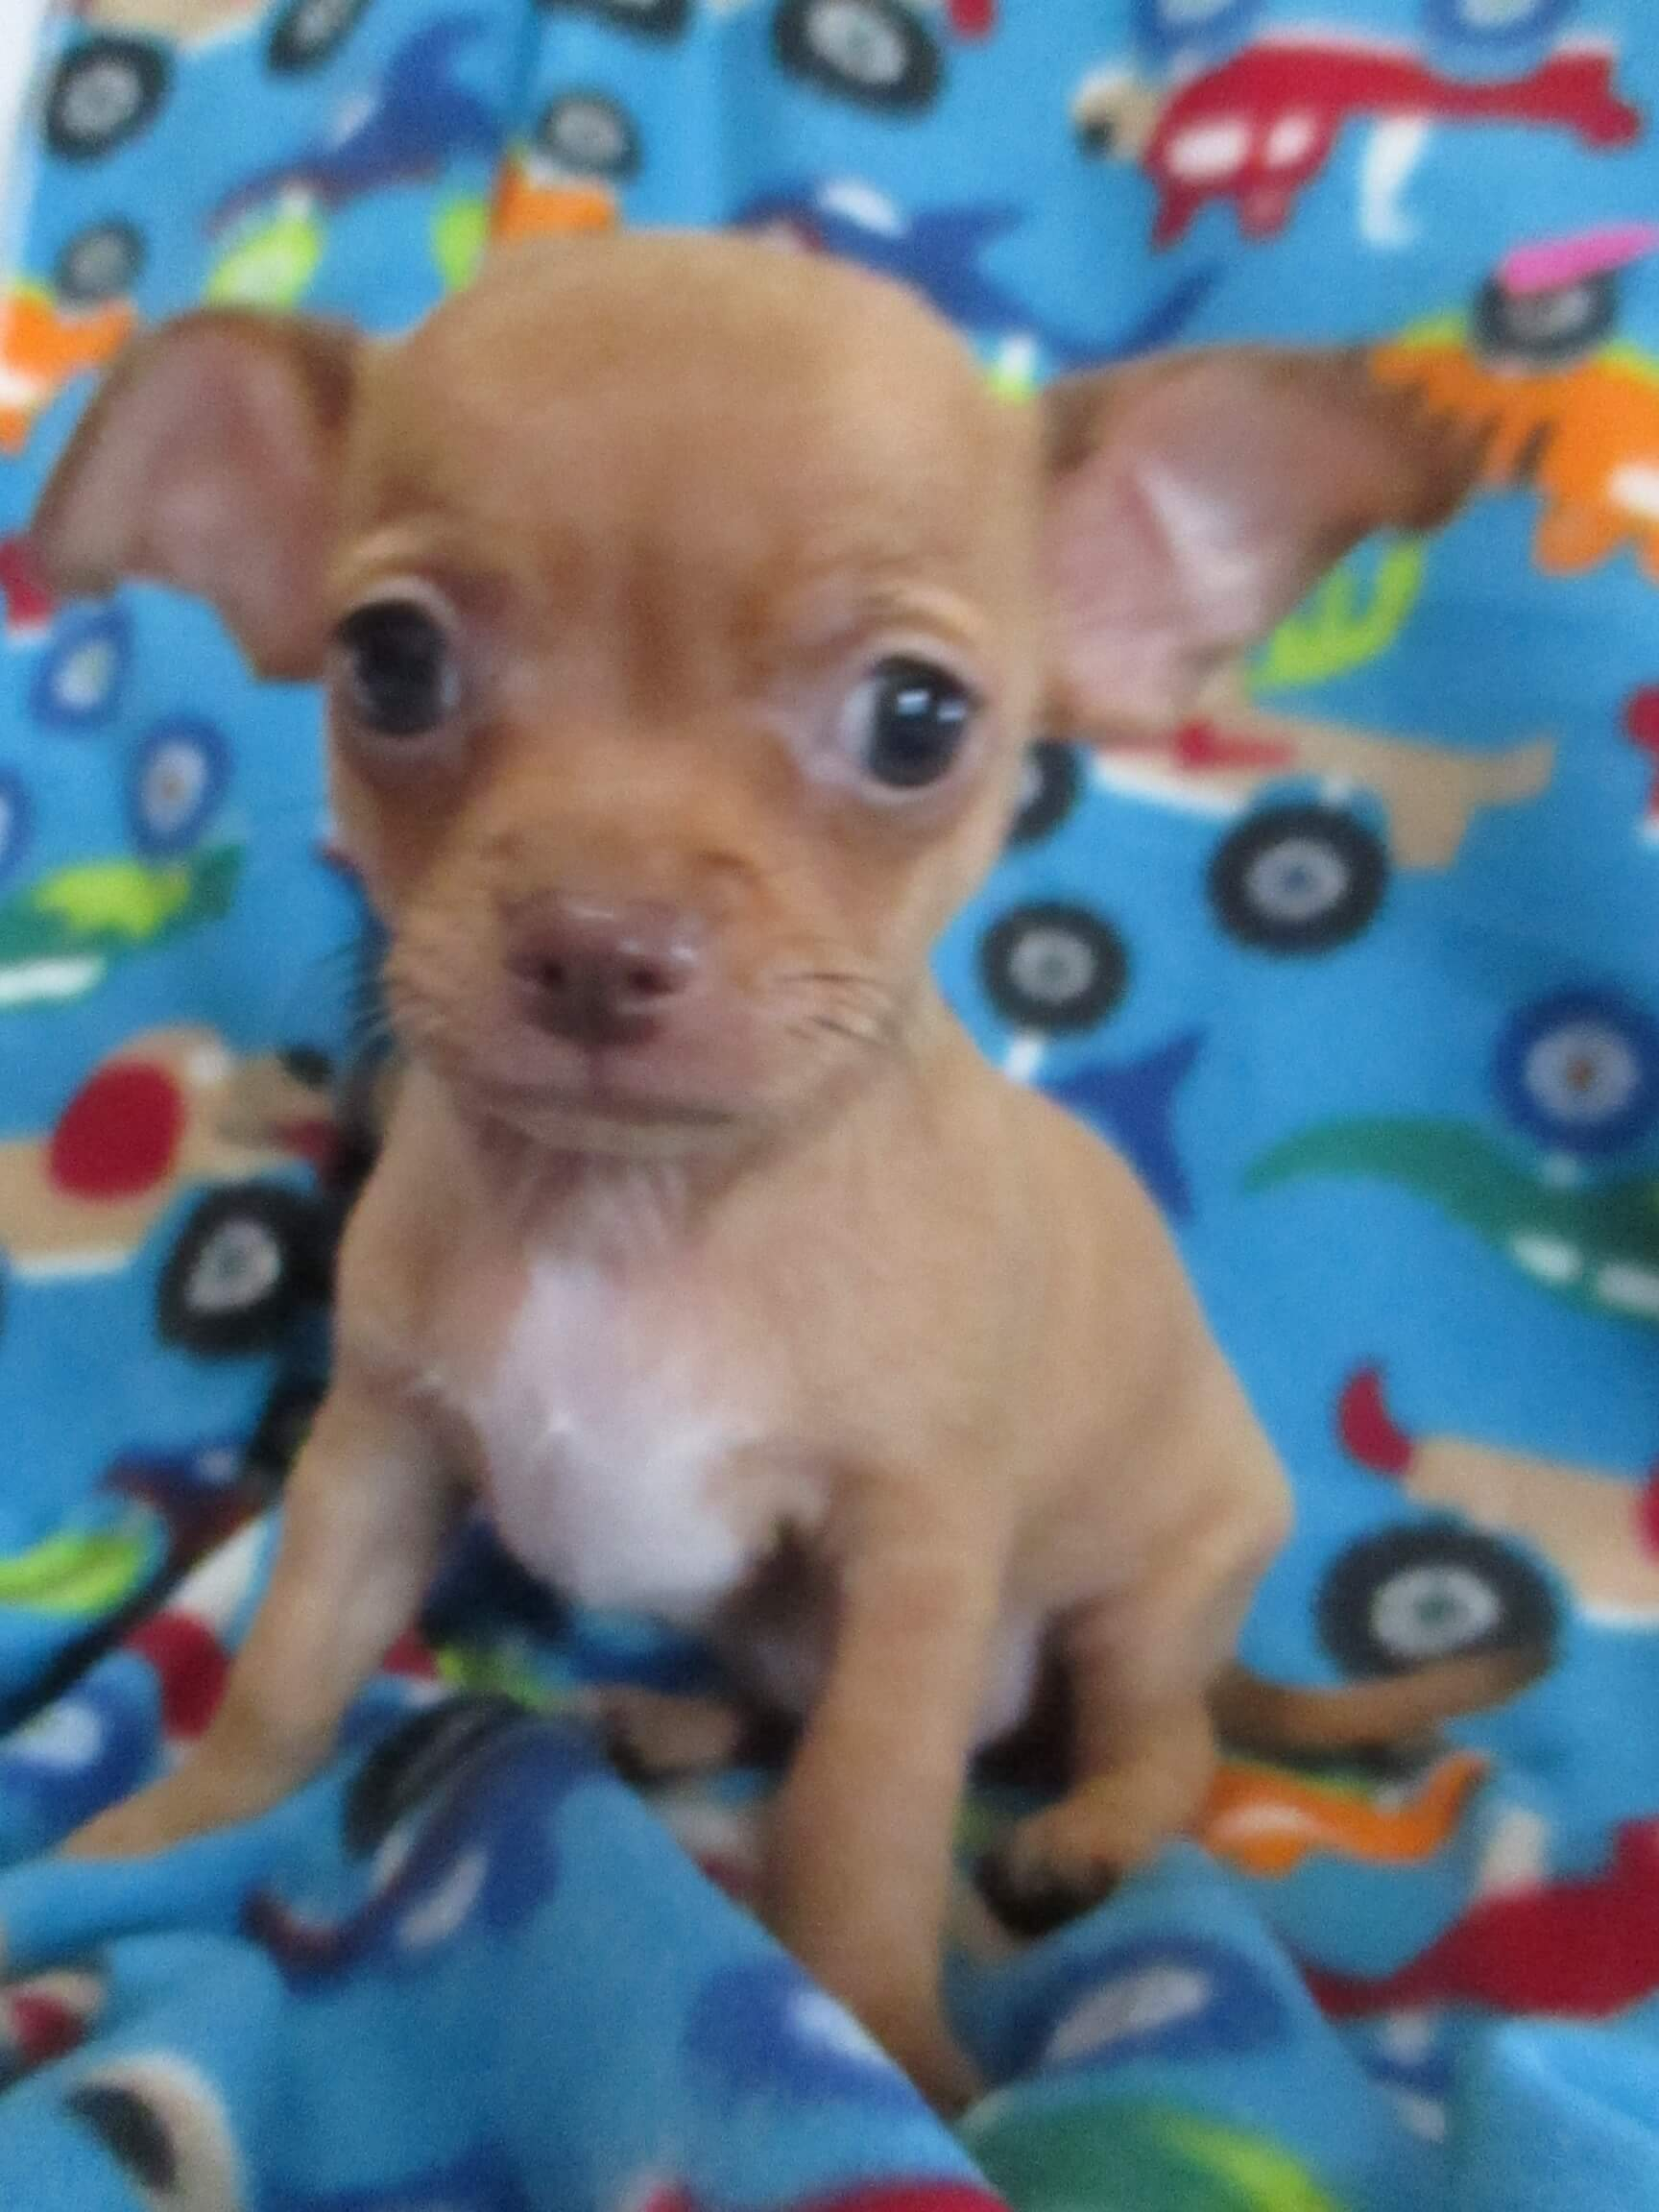 Chihuahua Puppies for Sale in Kwazulu Natal by Johan Rossouw